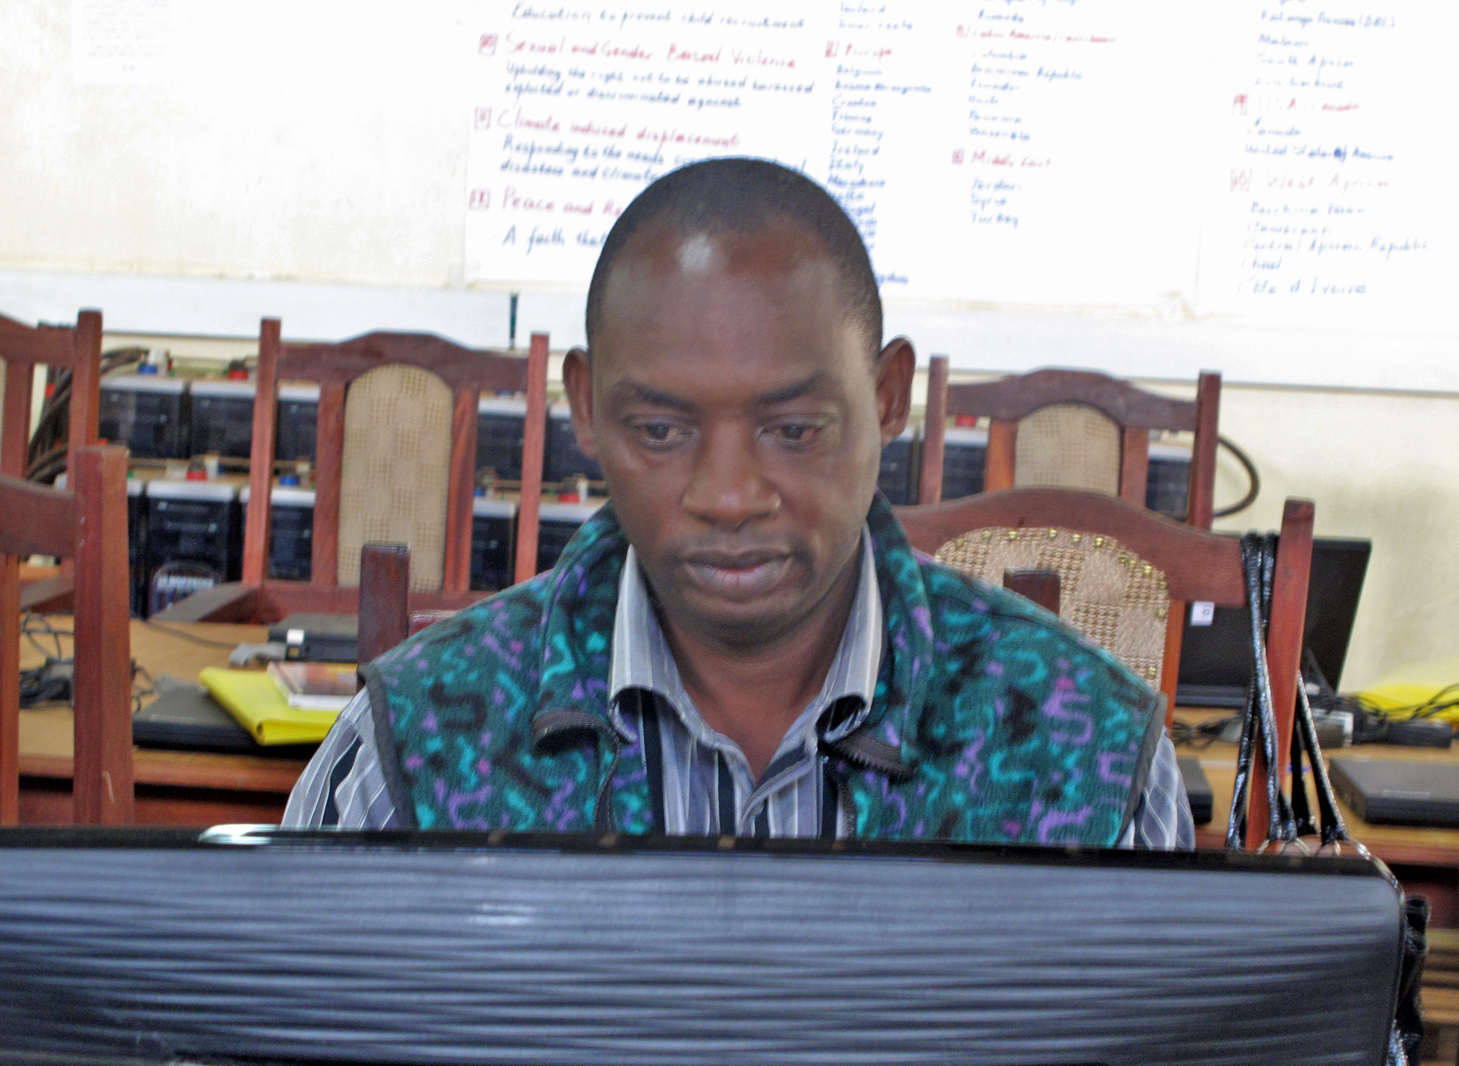 Gustave Lwaba, a 47-year-old from the Democratic Republic of Congo, is working towards a diploma in liberal studies from a university in the United States through a distance learning programme at Dzaleka Refugee Camp in Malawi